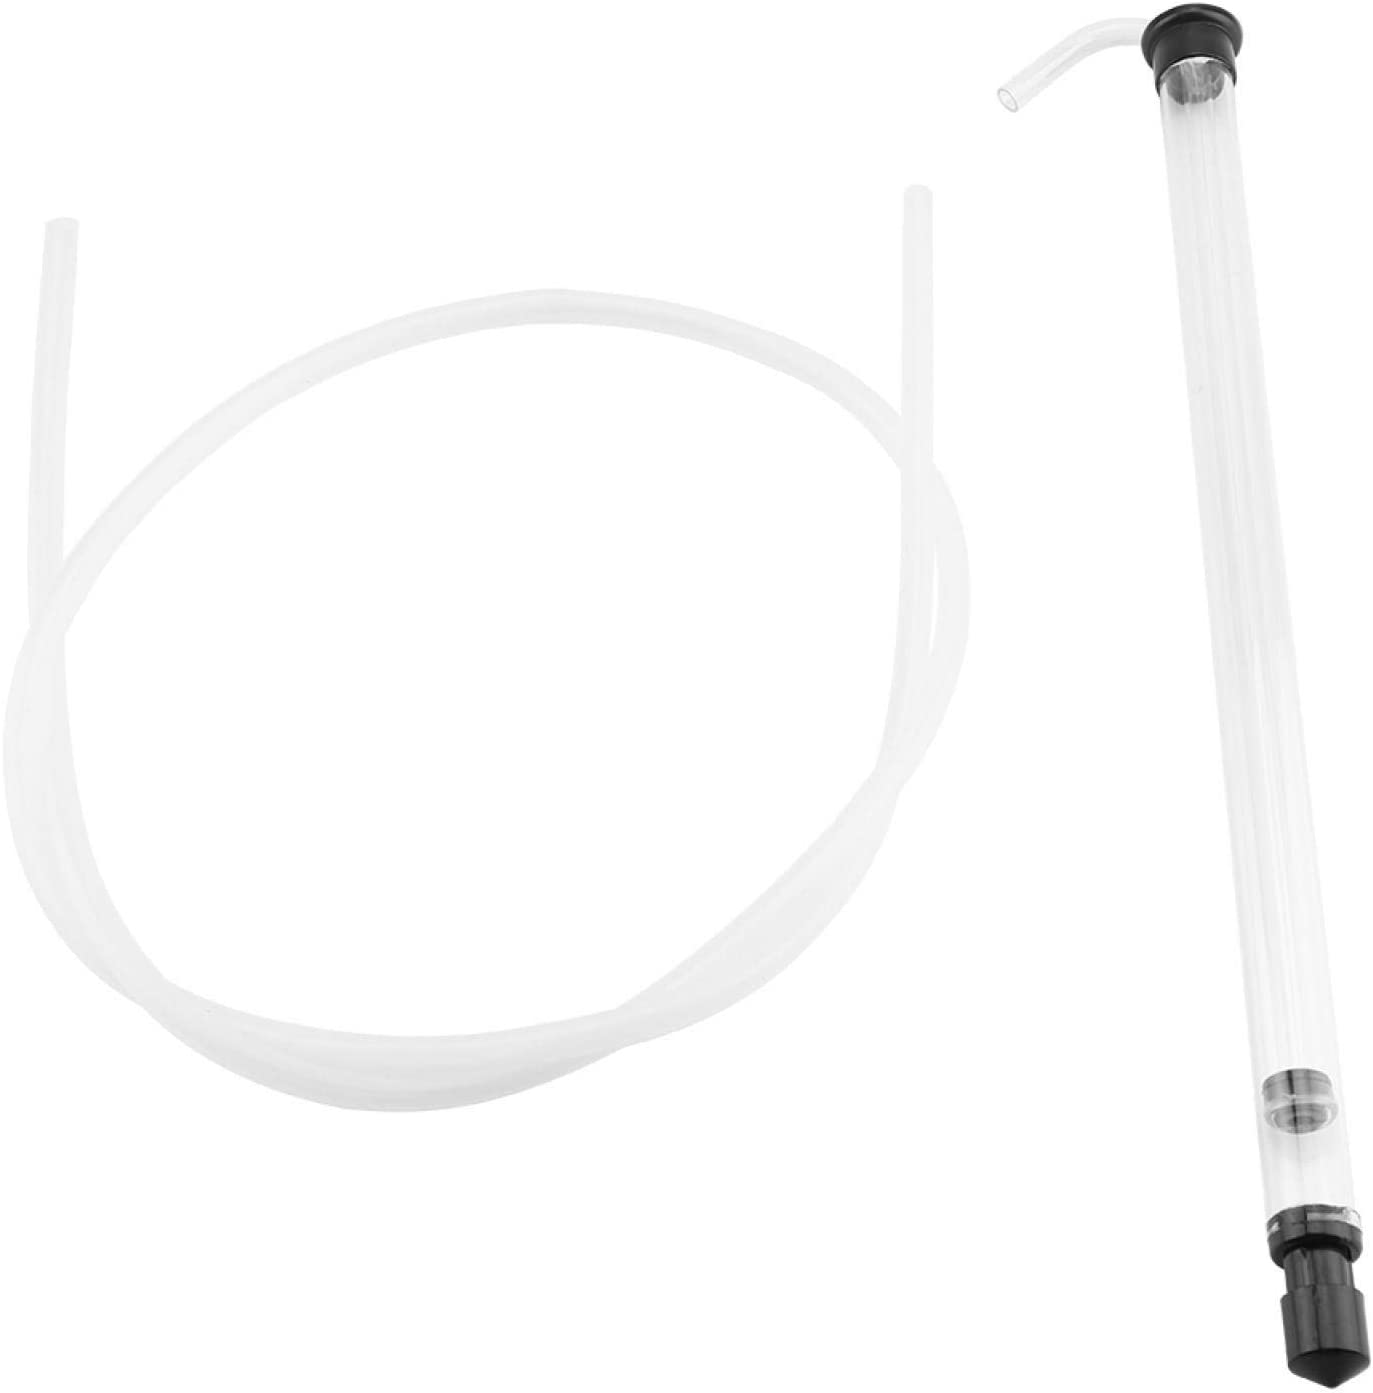 KUIKUI - Auto Siphon Cheap SALE Start Racking Cane Hose Tube W Syphon Filter Beer shopping